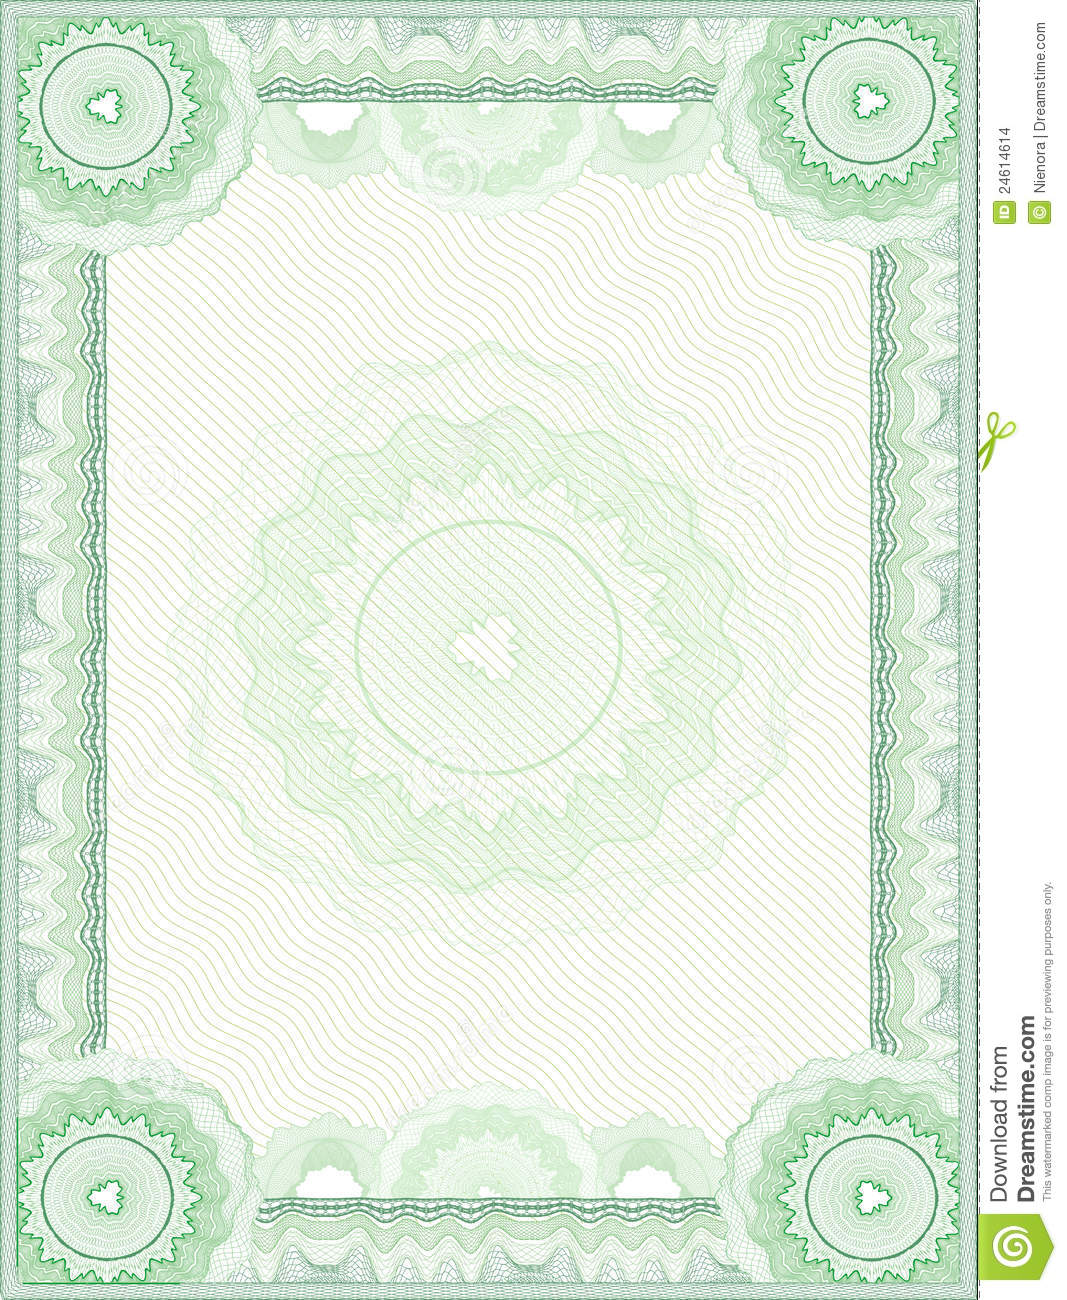 Guilloche Vector Border Stock Images - Image: 24614614